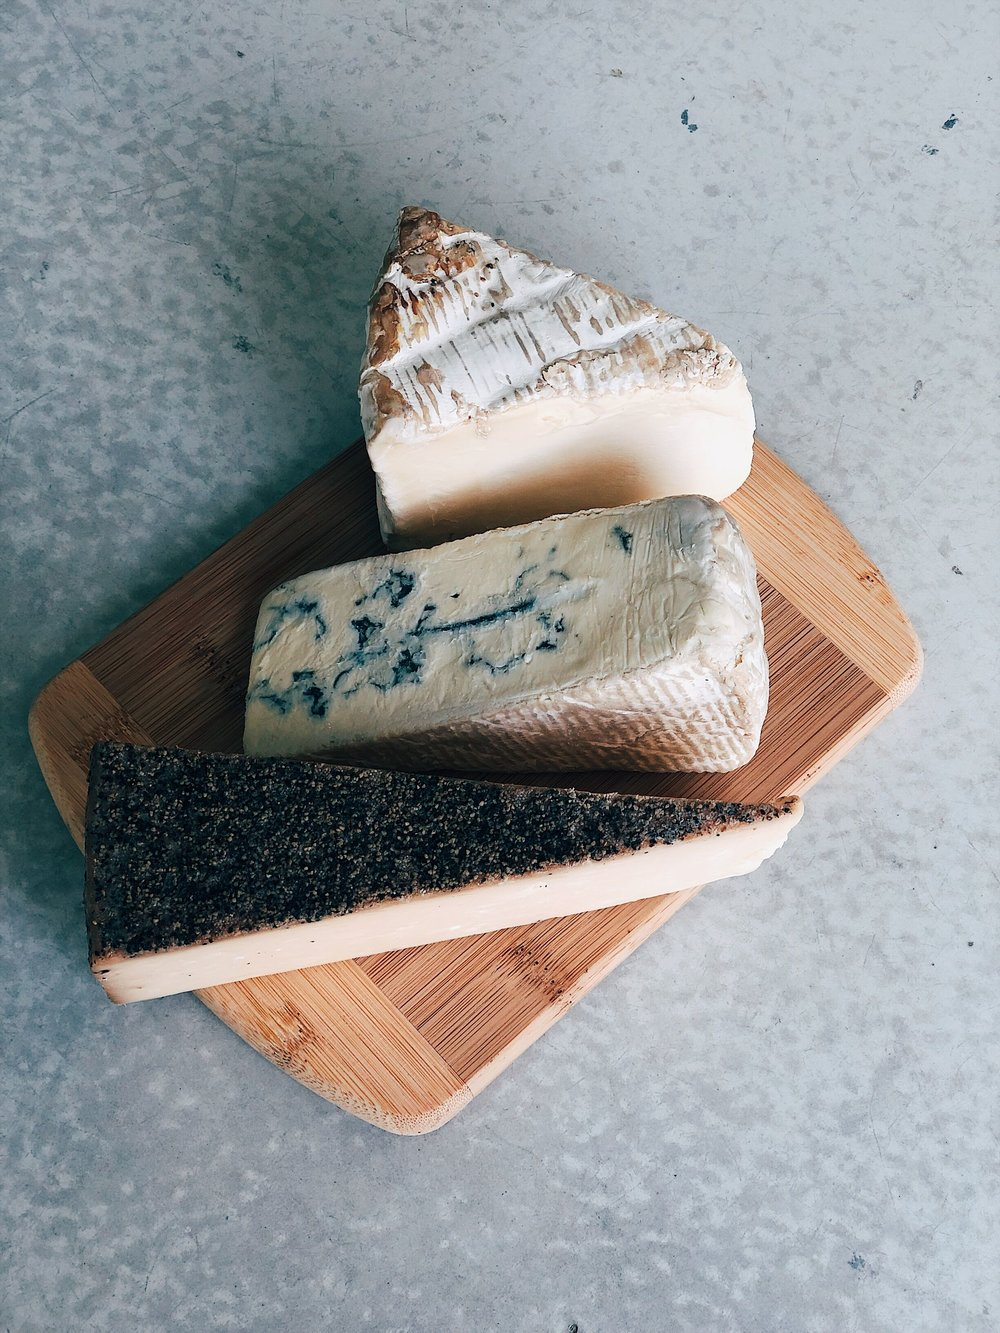 - While so many cheeses will be delicious with Berries + Thyme, we fall hard for:• Triple Cream Cheeses (like a Brie)• Stilton Cheeses (like a Blue)• Toscano Cheese (a nice hard cheese, usually a Pecorino. Ours is crusted in herbs!)